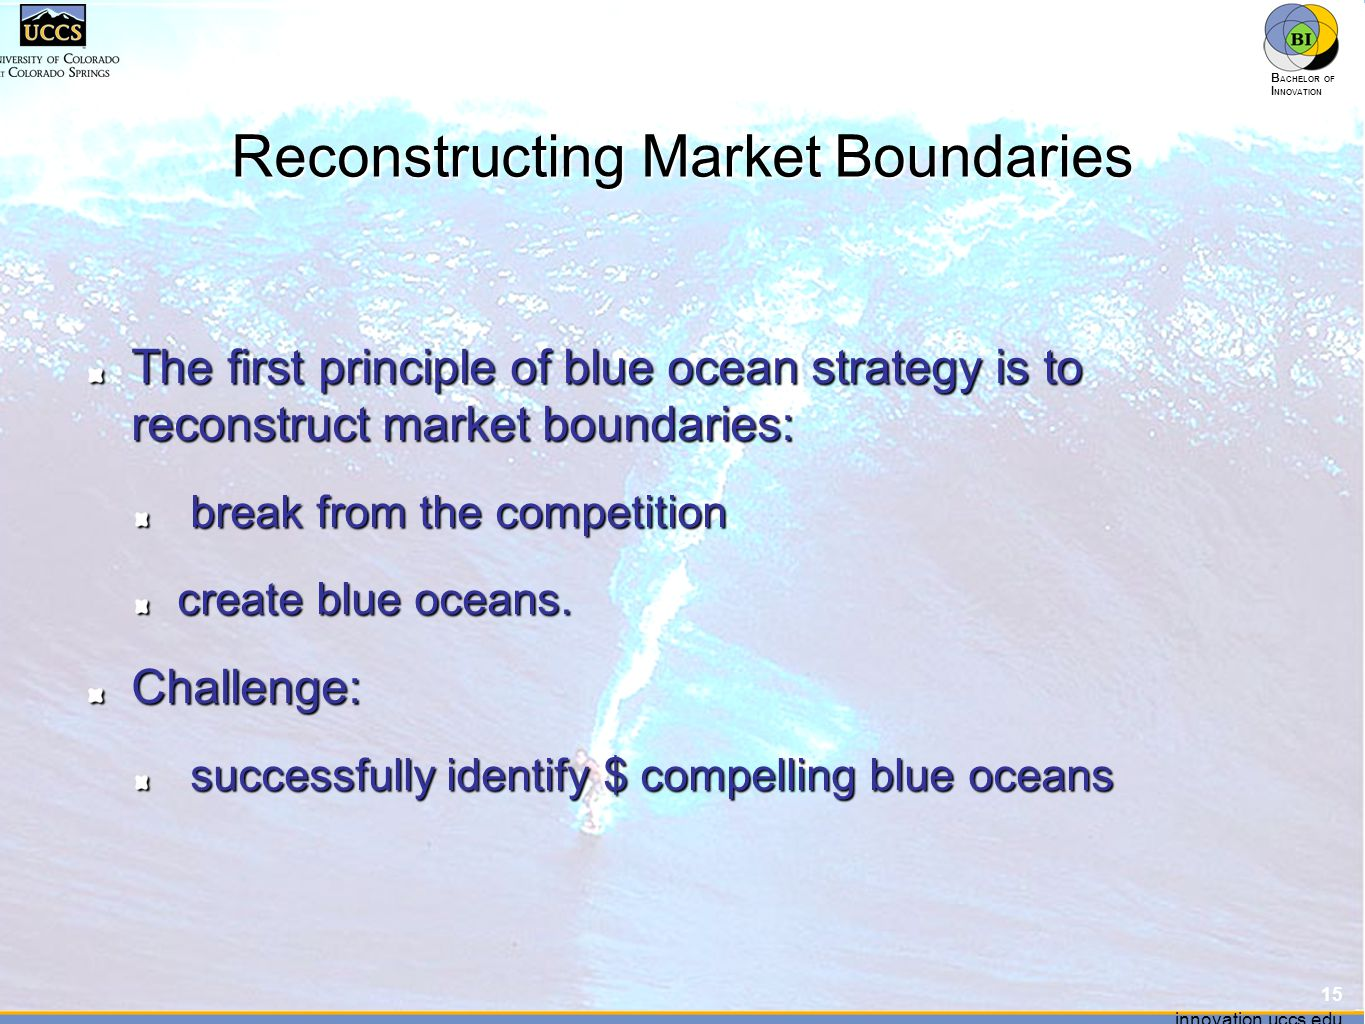 innovation.uccs.edu B ACHELOR OF I NNOVATION ™ innovation.uccs.edu B ACHELOR OF I NNOVATION ™ Reconstructing Market Boundaries The first principle of blue ocean strategy is to reconstruct market boundaries: break from the competition break from the competition create blue oceans.